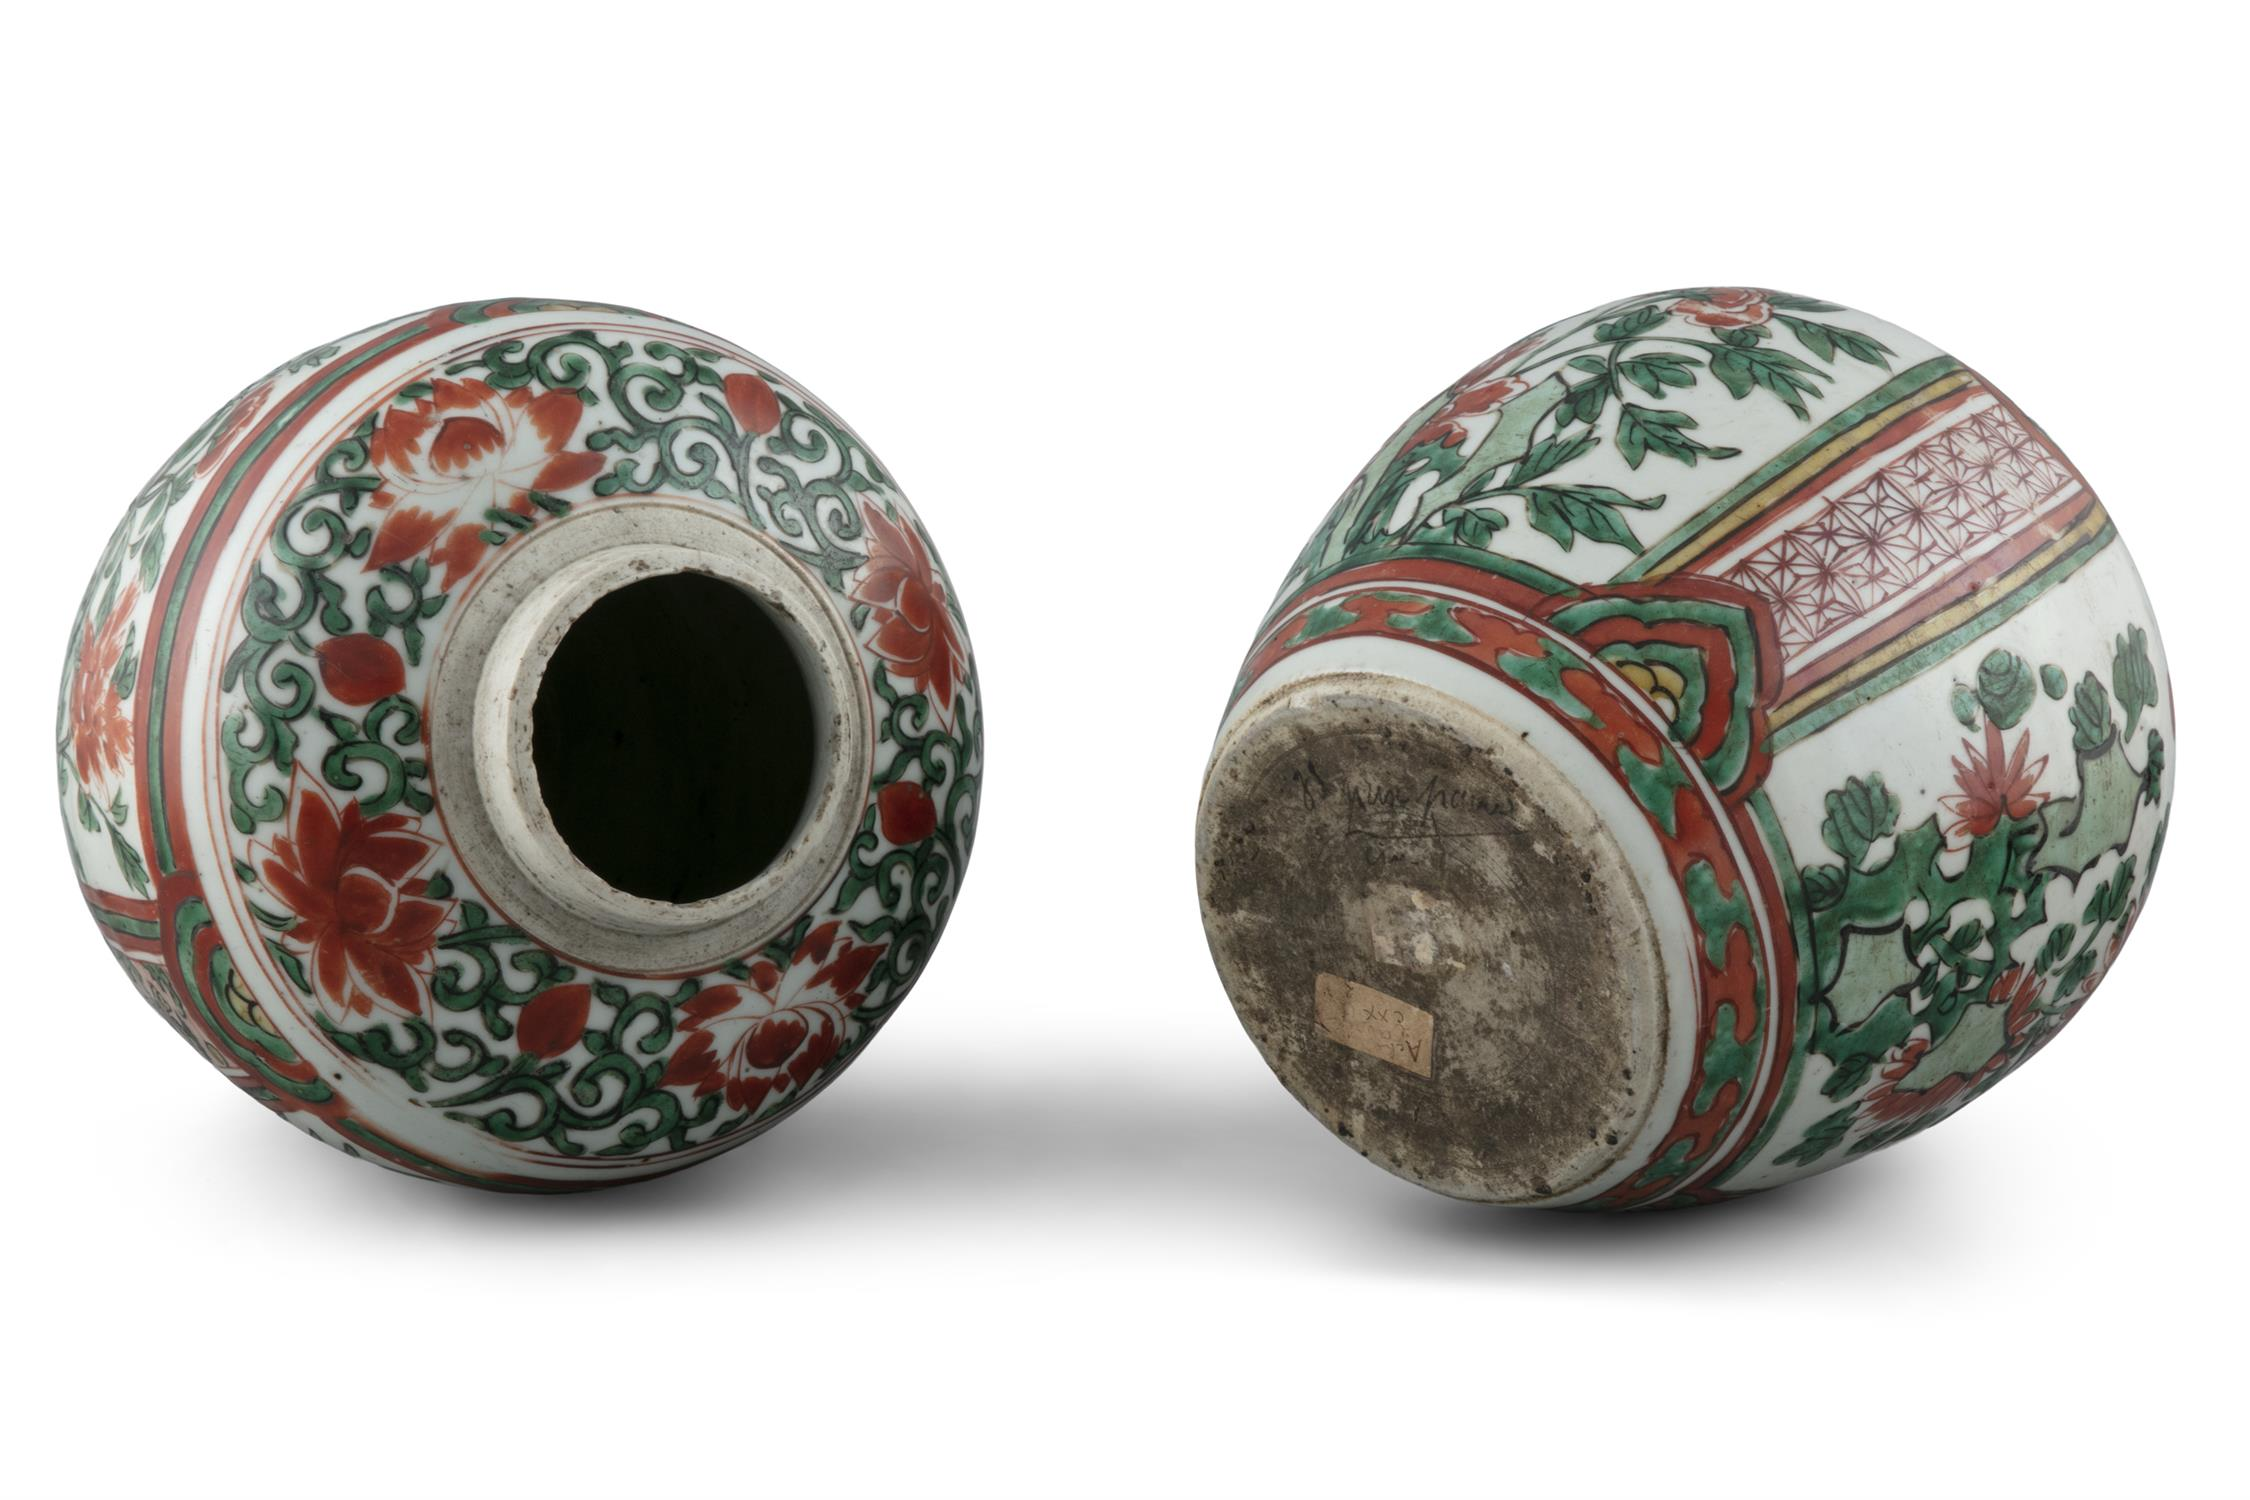 A NEAR PAIR OF WUCAI 'CHI DRAGONS' PORCELAIN GINGER JARS China, Transitional period, 17th century - Image 16 of 17